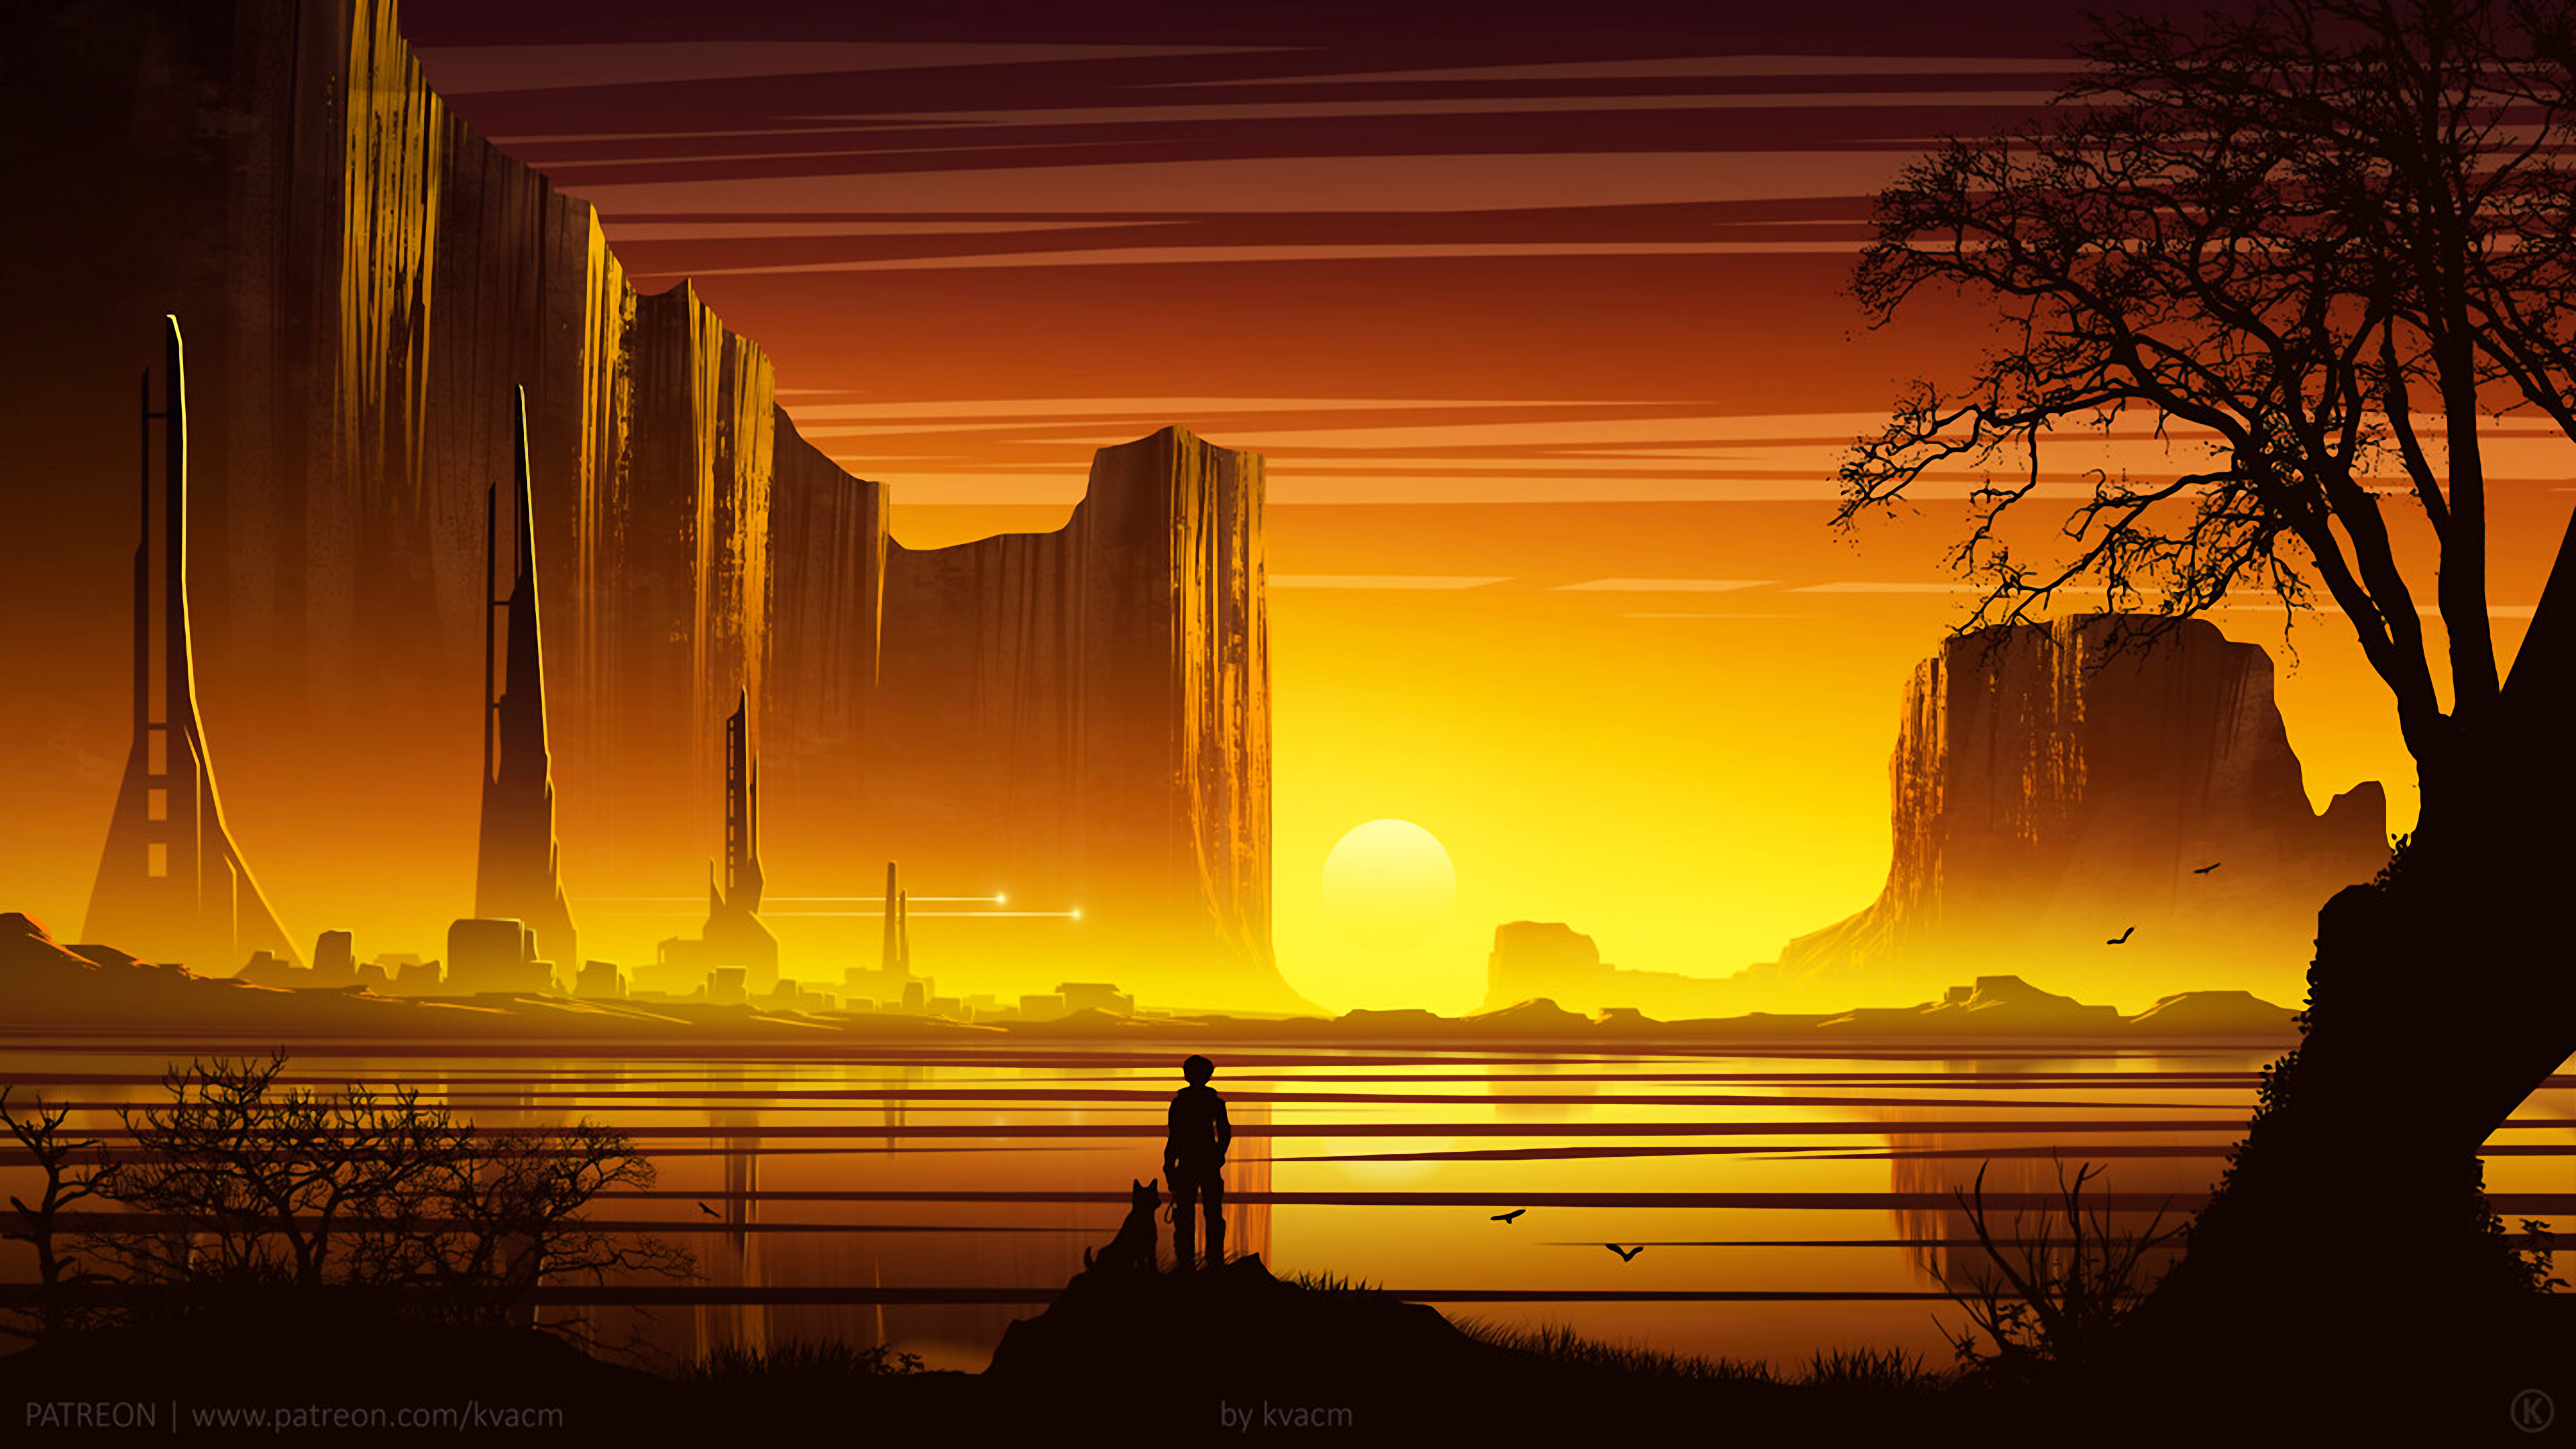 General 3840x2160 digital digital art artwork illustration landscape nature people yellow gold Sun sun rays sunset dusk evening canyon architecture trees shadow dark building town city sky skyscape yellow background water reflection outdoors lake mountains warm western fantasy art science fiction futuristic